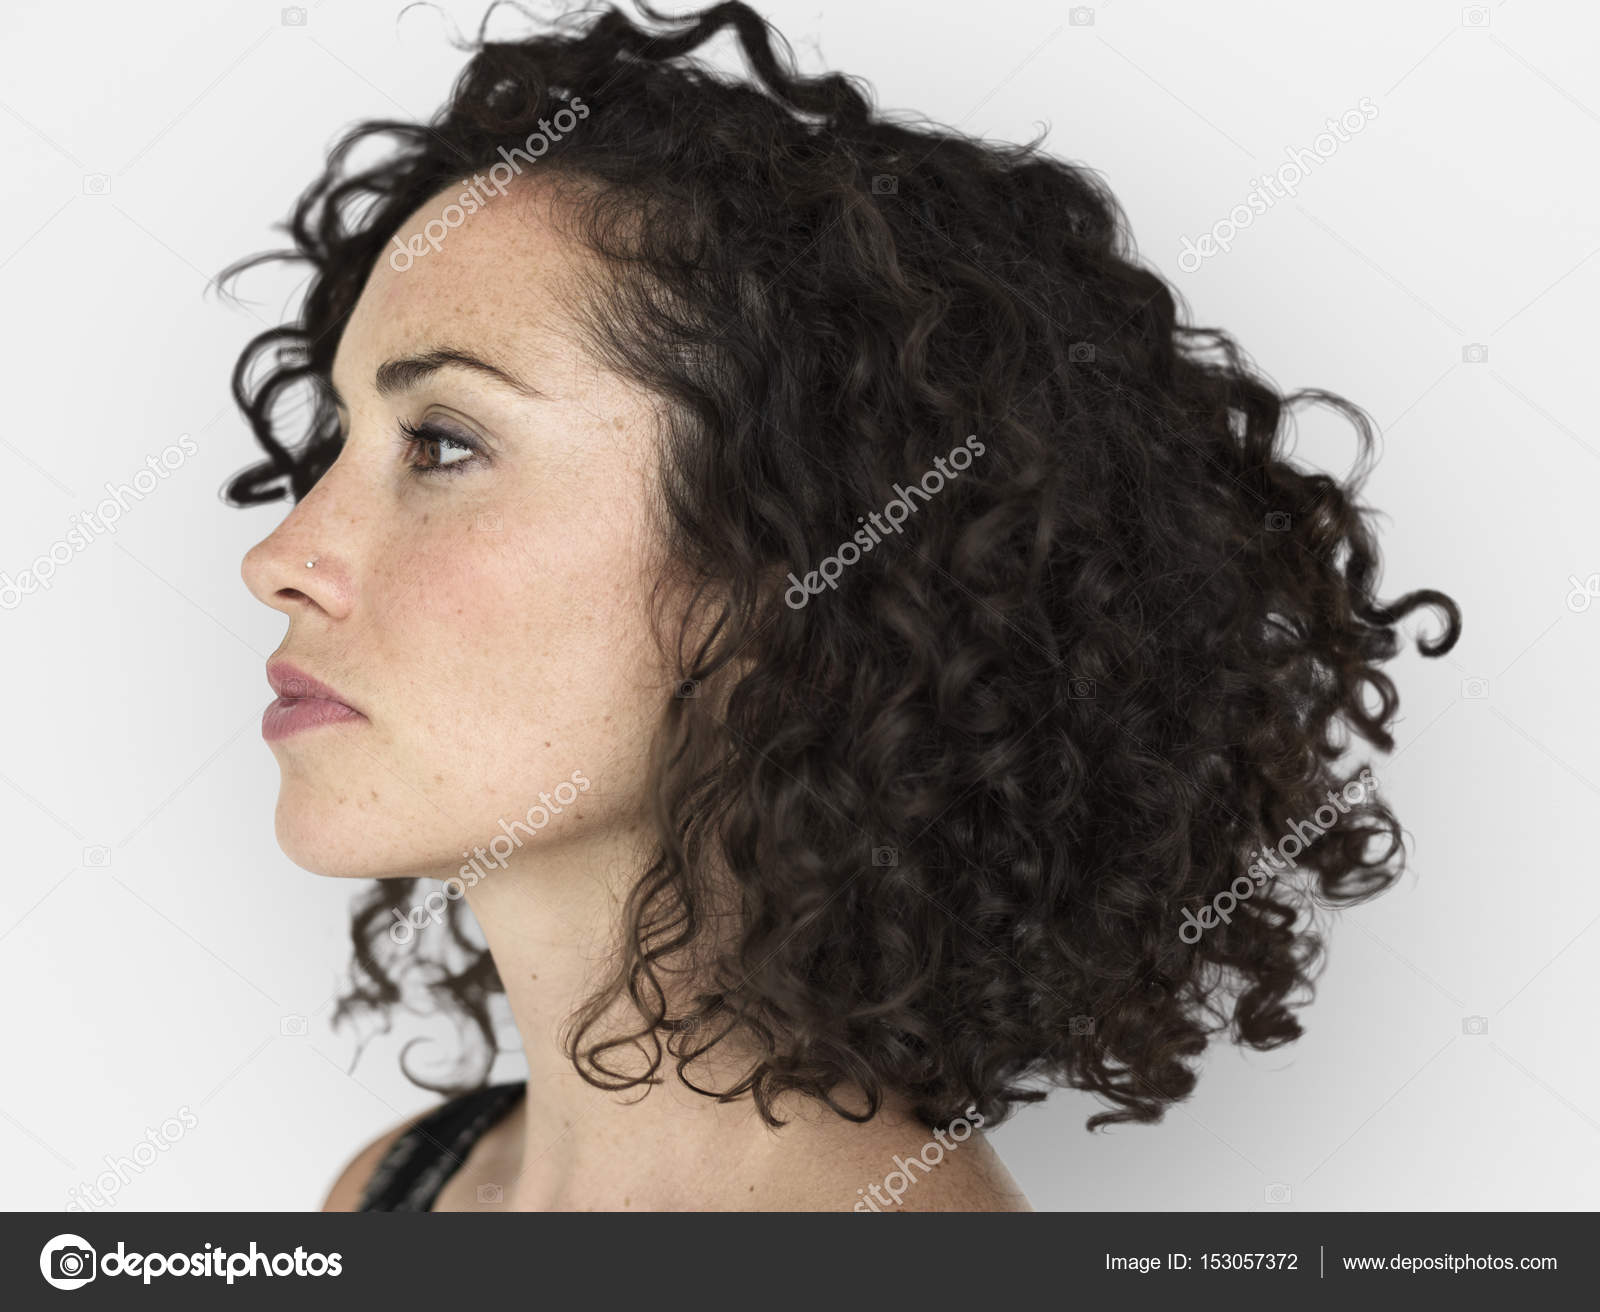 Caucasian Woman With Short Curly Hair Stock Photo C Rawpixel 153057372